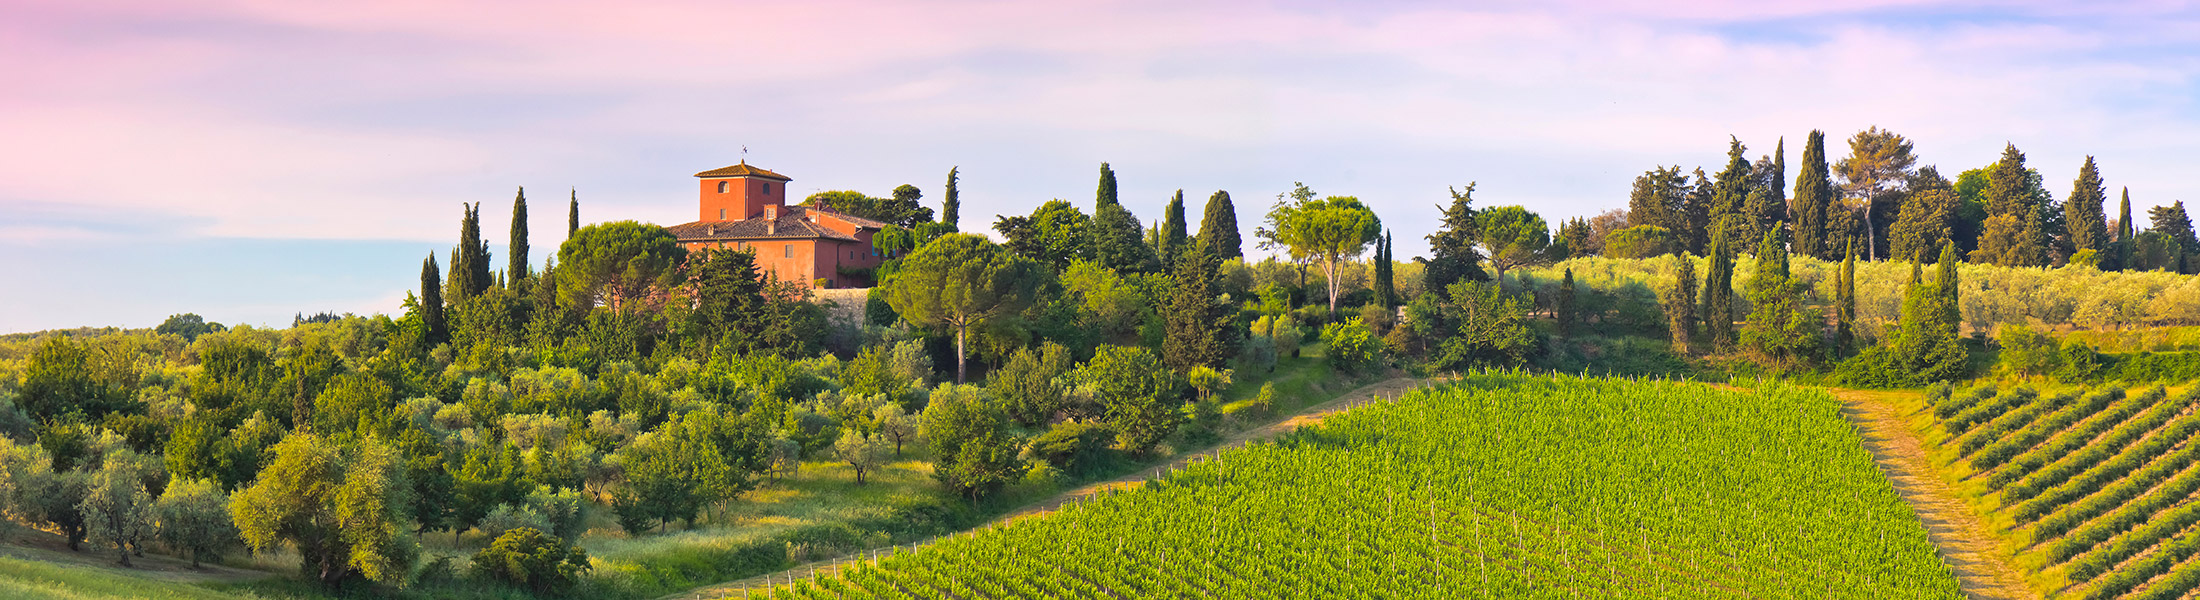 Vineyard and villa at sunset in Tuscany Italy in Europe